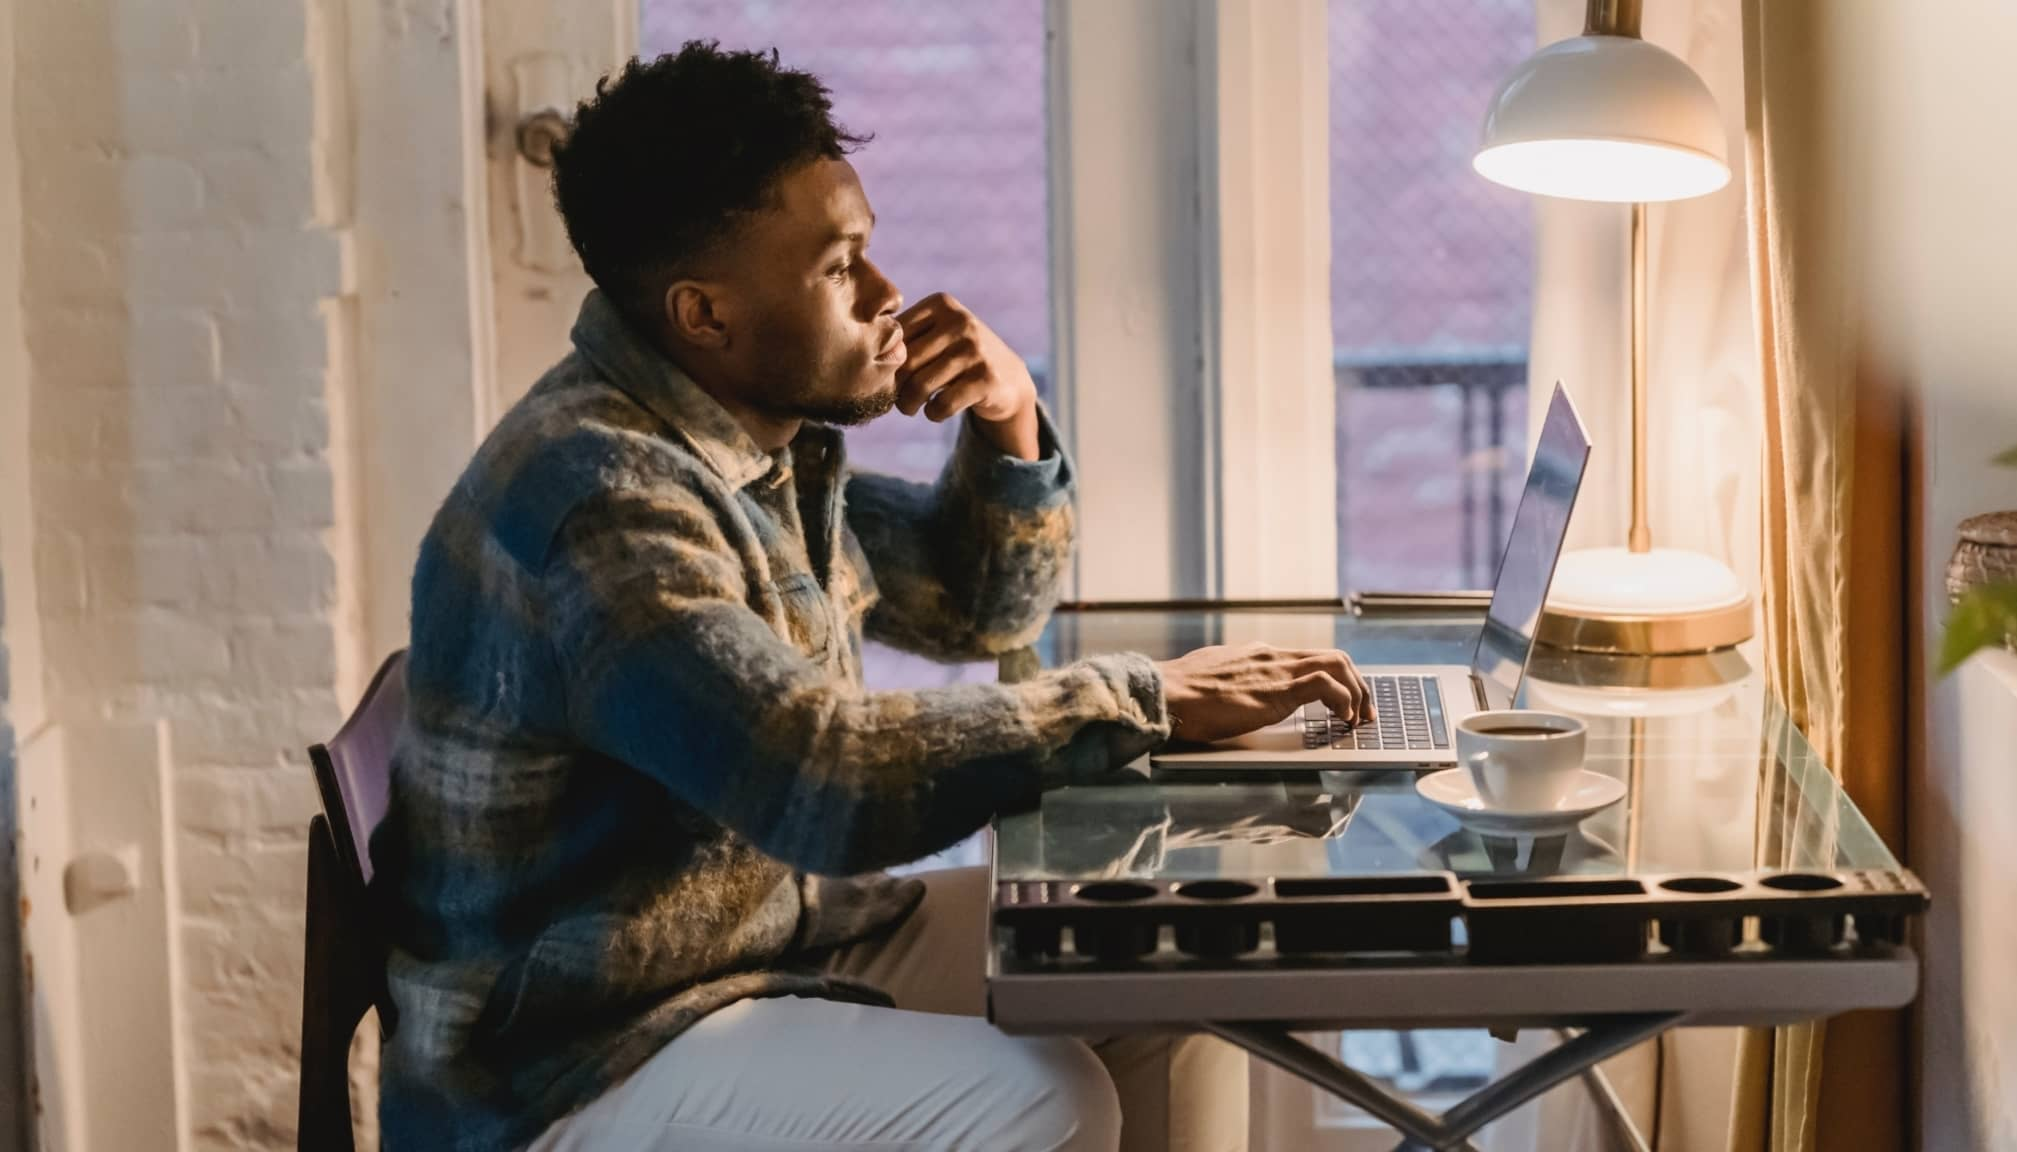 Man working from home contemplating new project